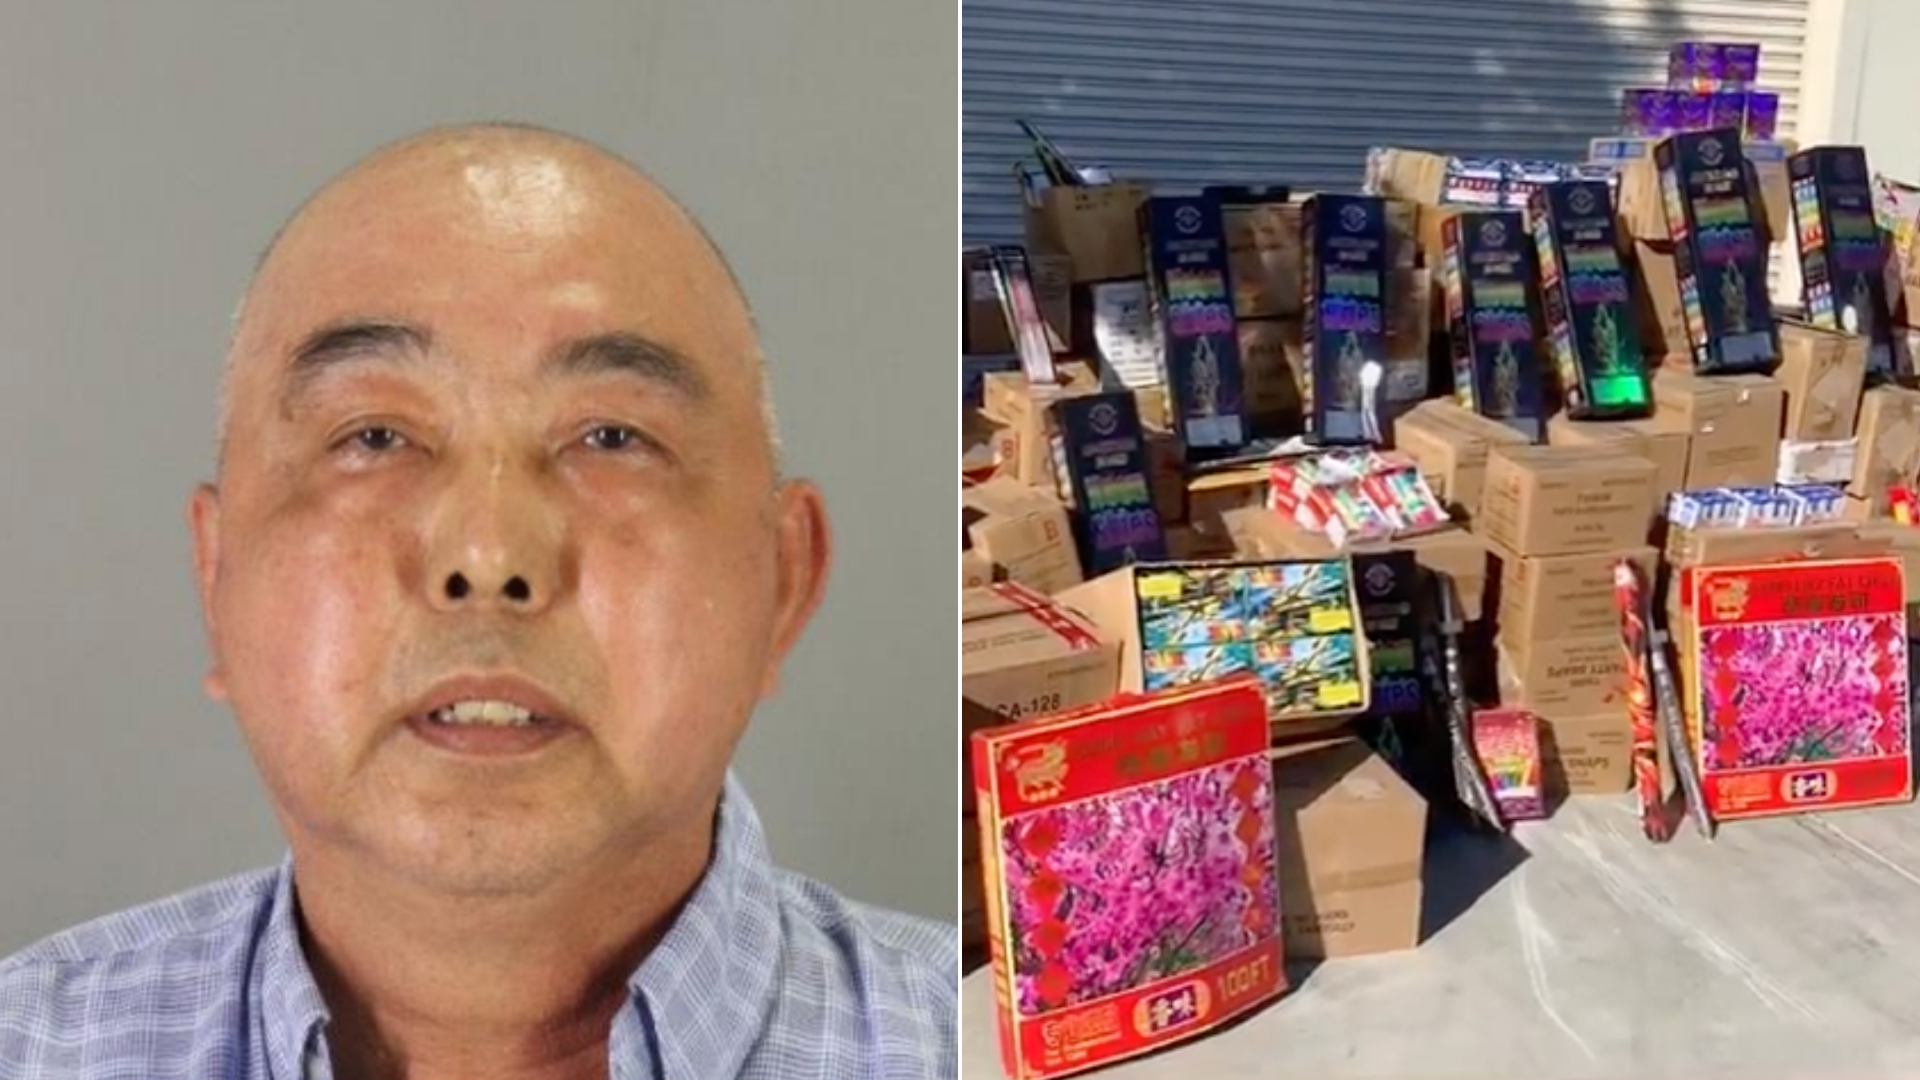 Sam San of San Francisco, left, and illegal fireworks seized are seen in photos released in June 2021 by the San Mateo County Sheriff's Office.